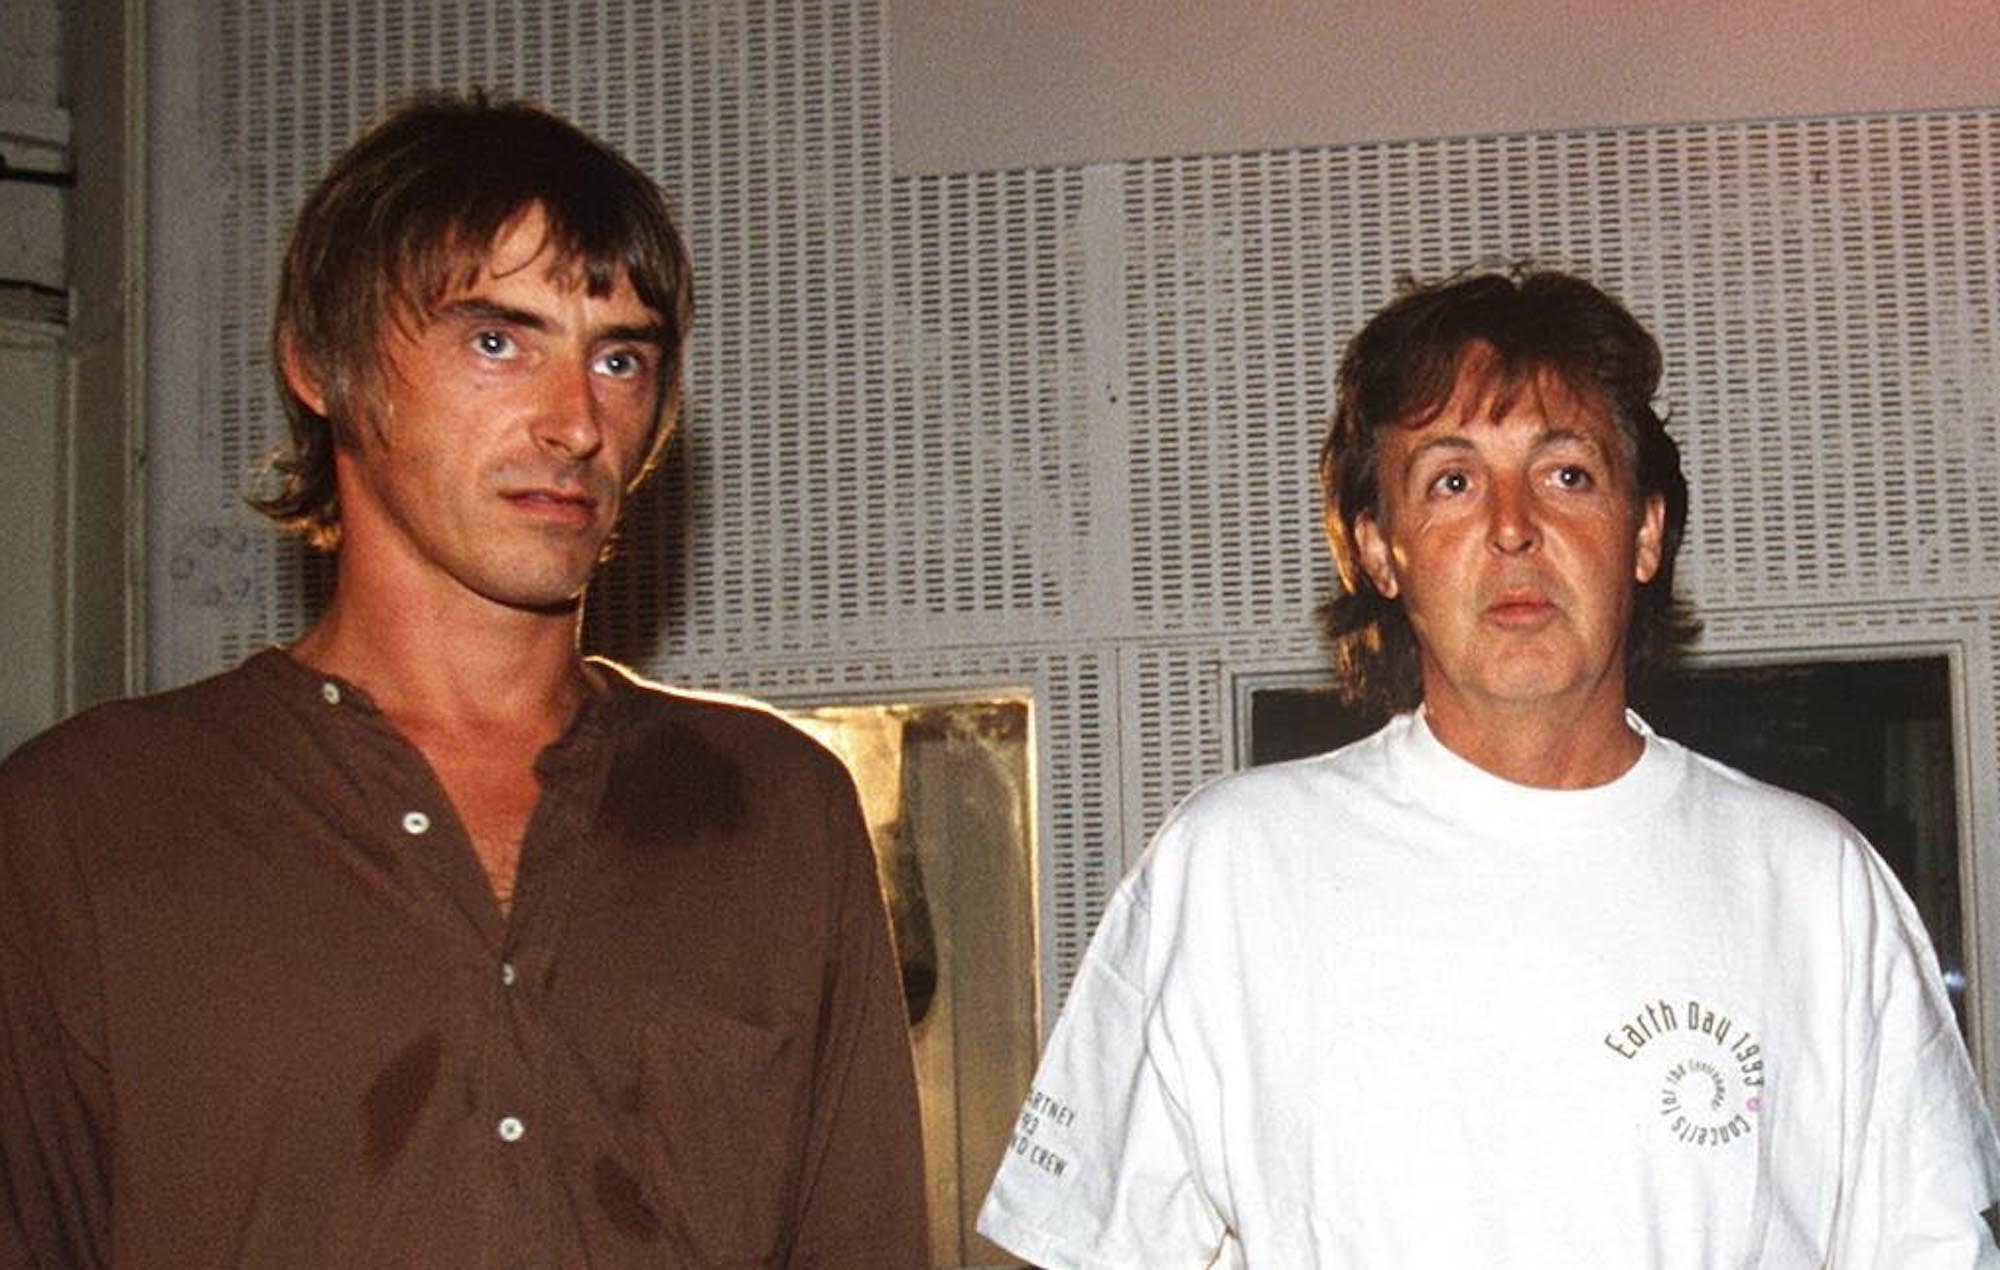 Paul Weller and Paul McCartney